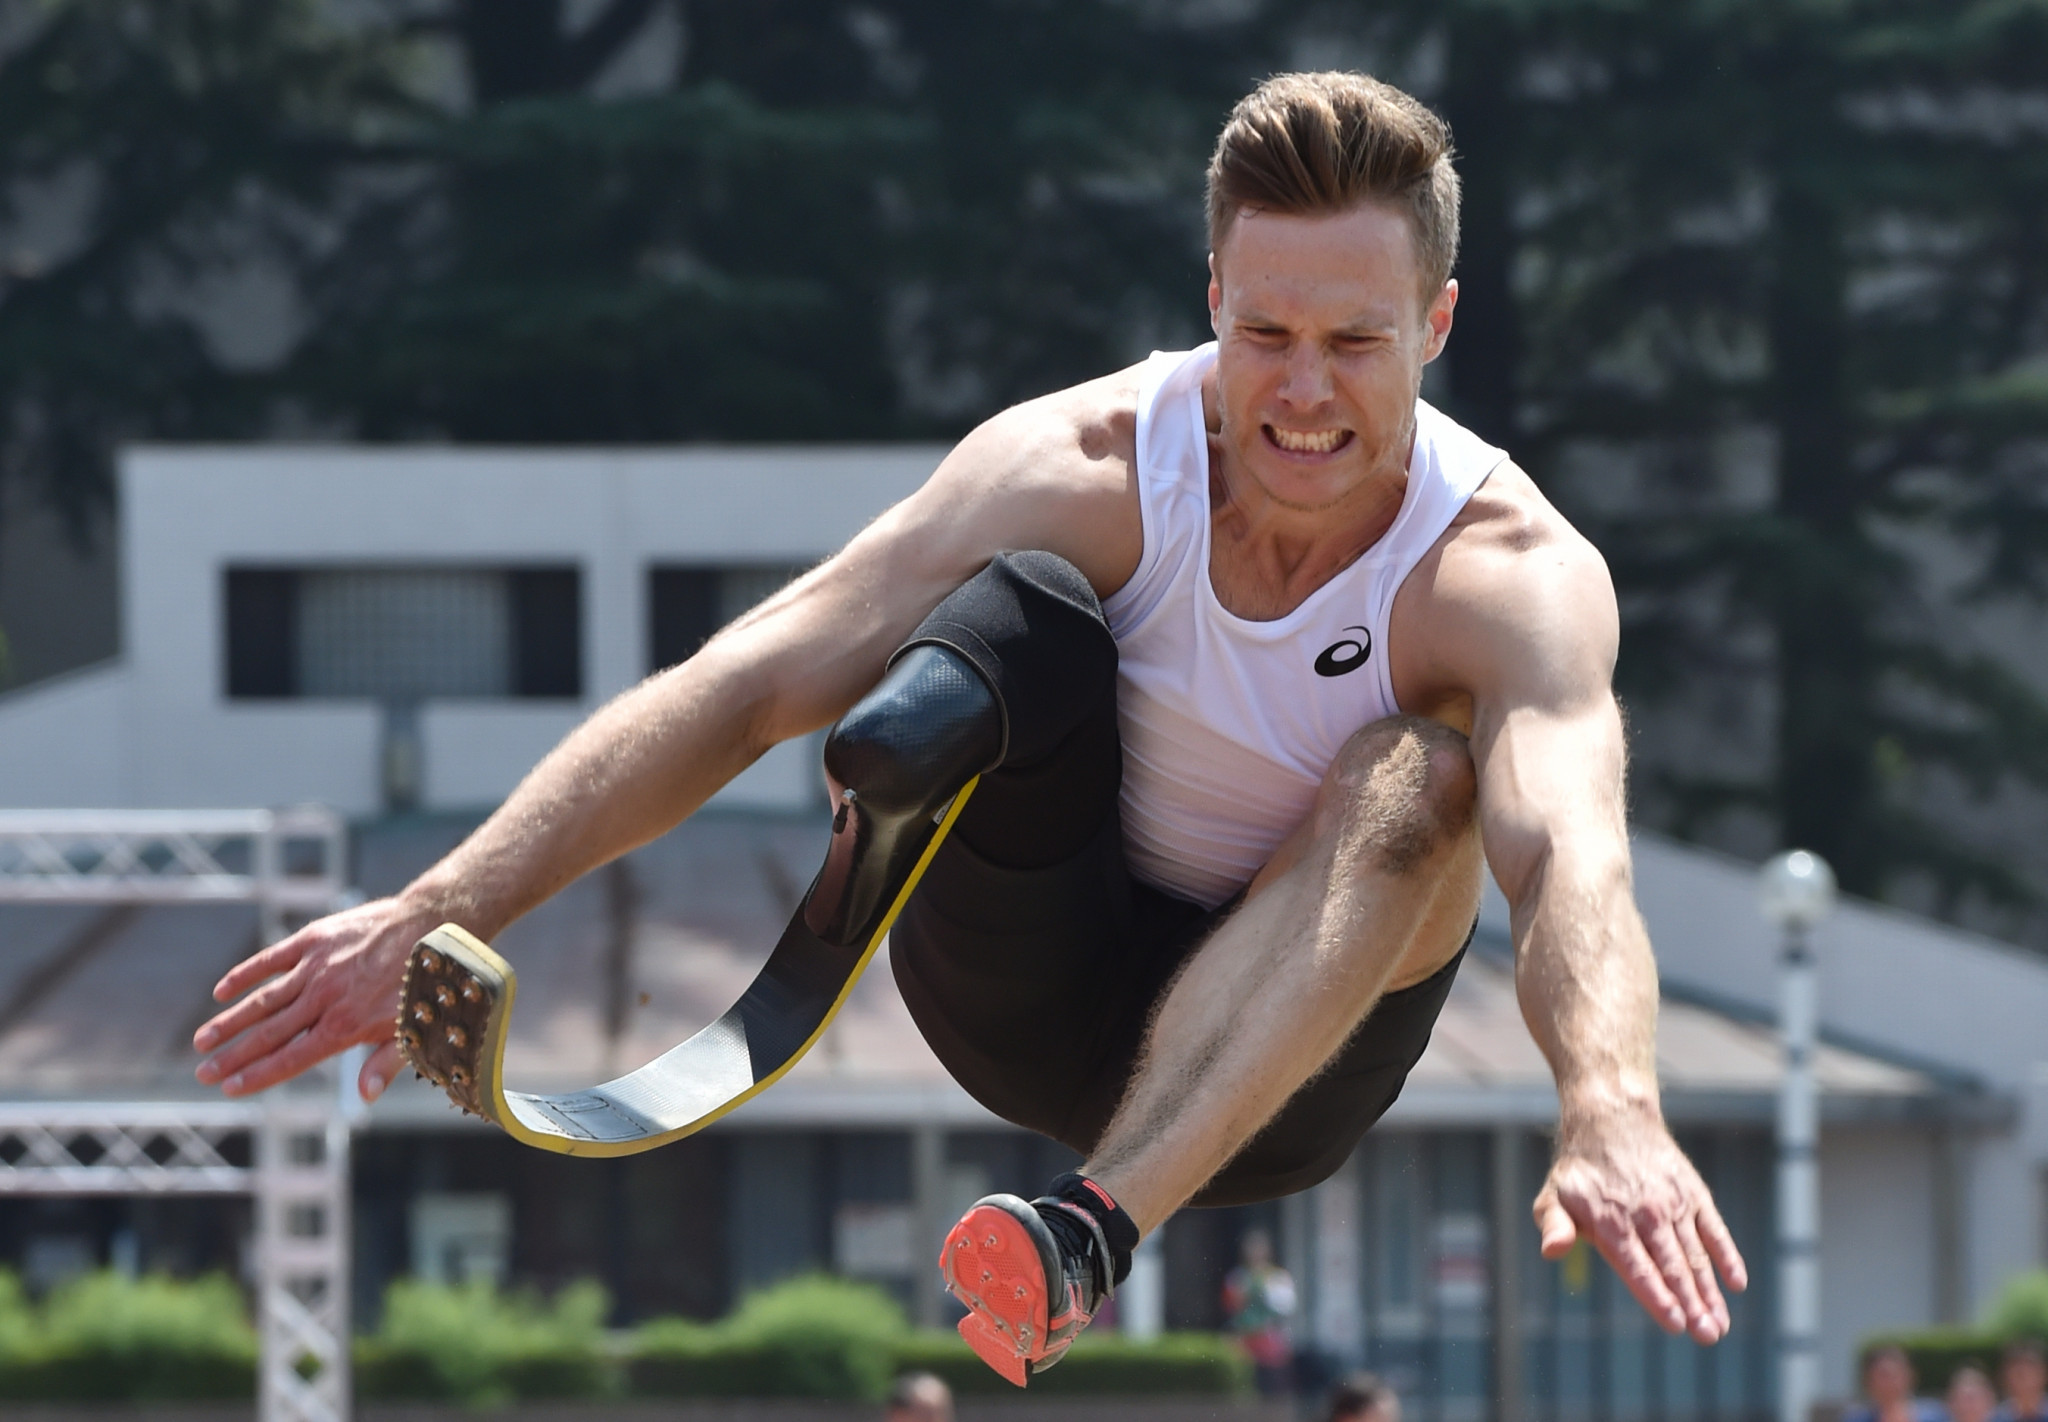 Markus Rehm went further than the T64 long jump world record in an exhibition ©Getty Images